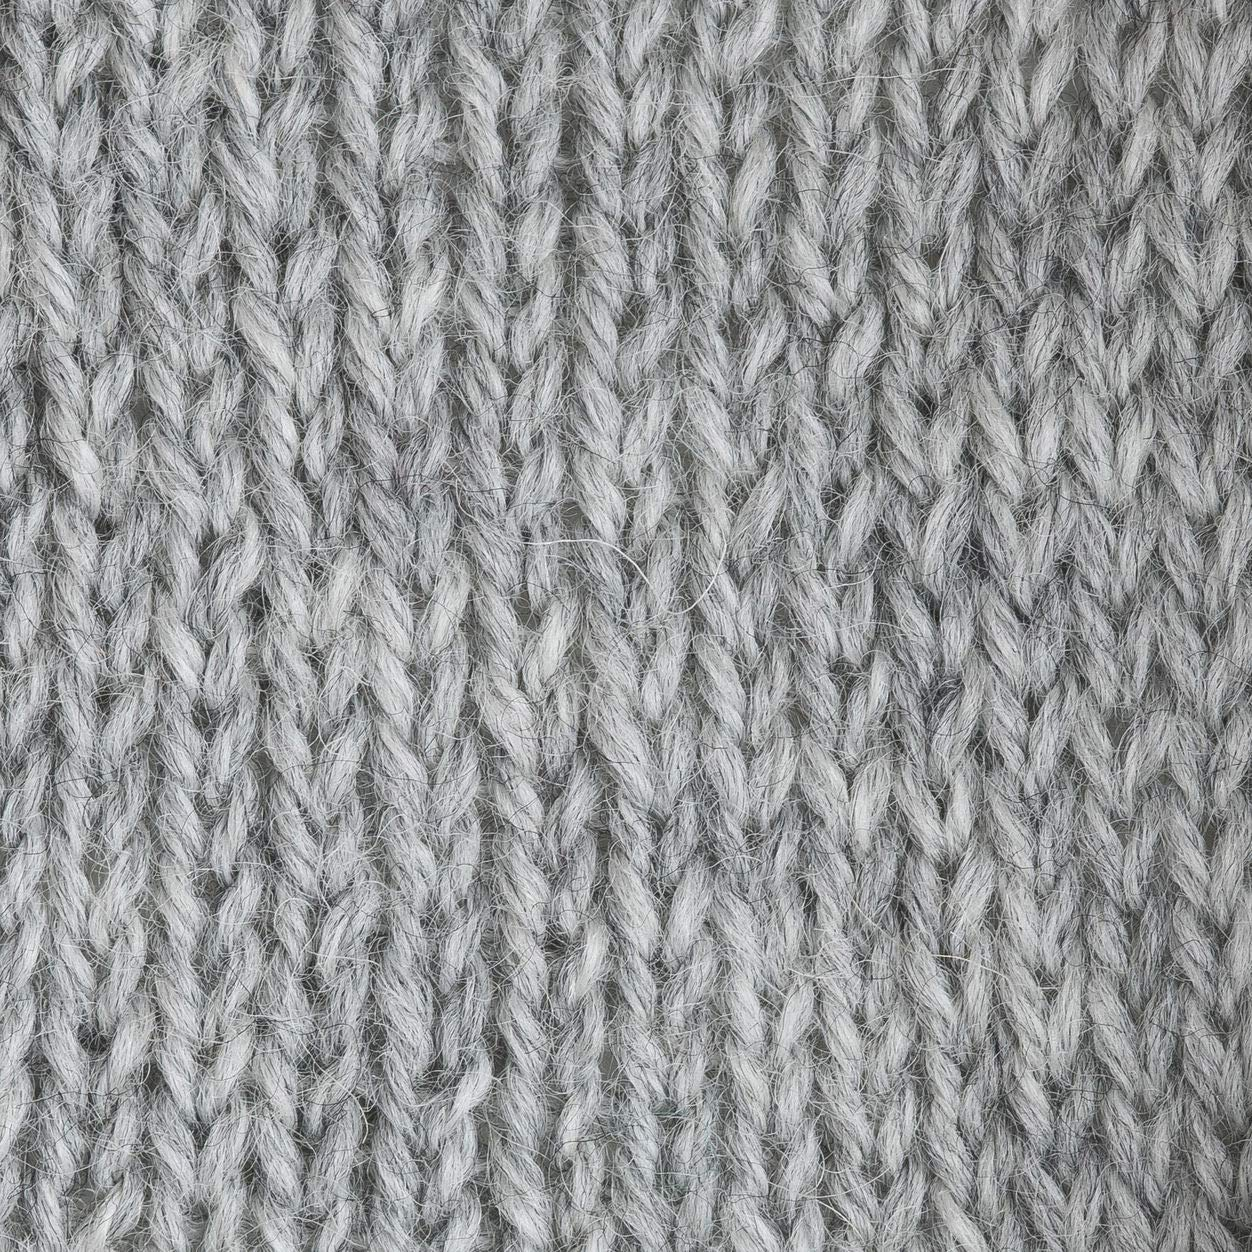 Dark Grey Mix Spinrite Patons Classic Wool Yarn